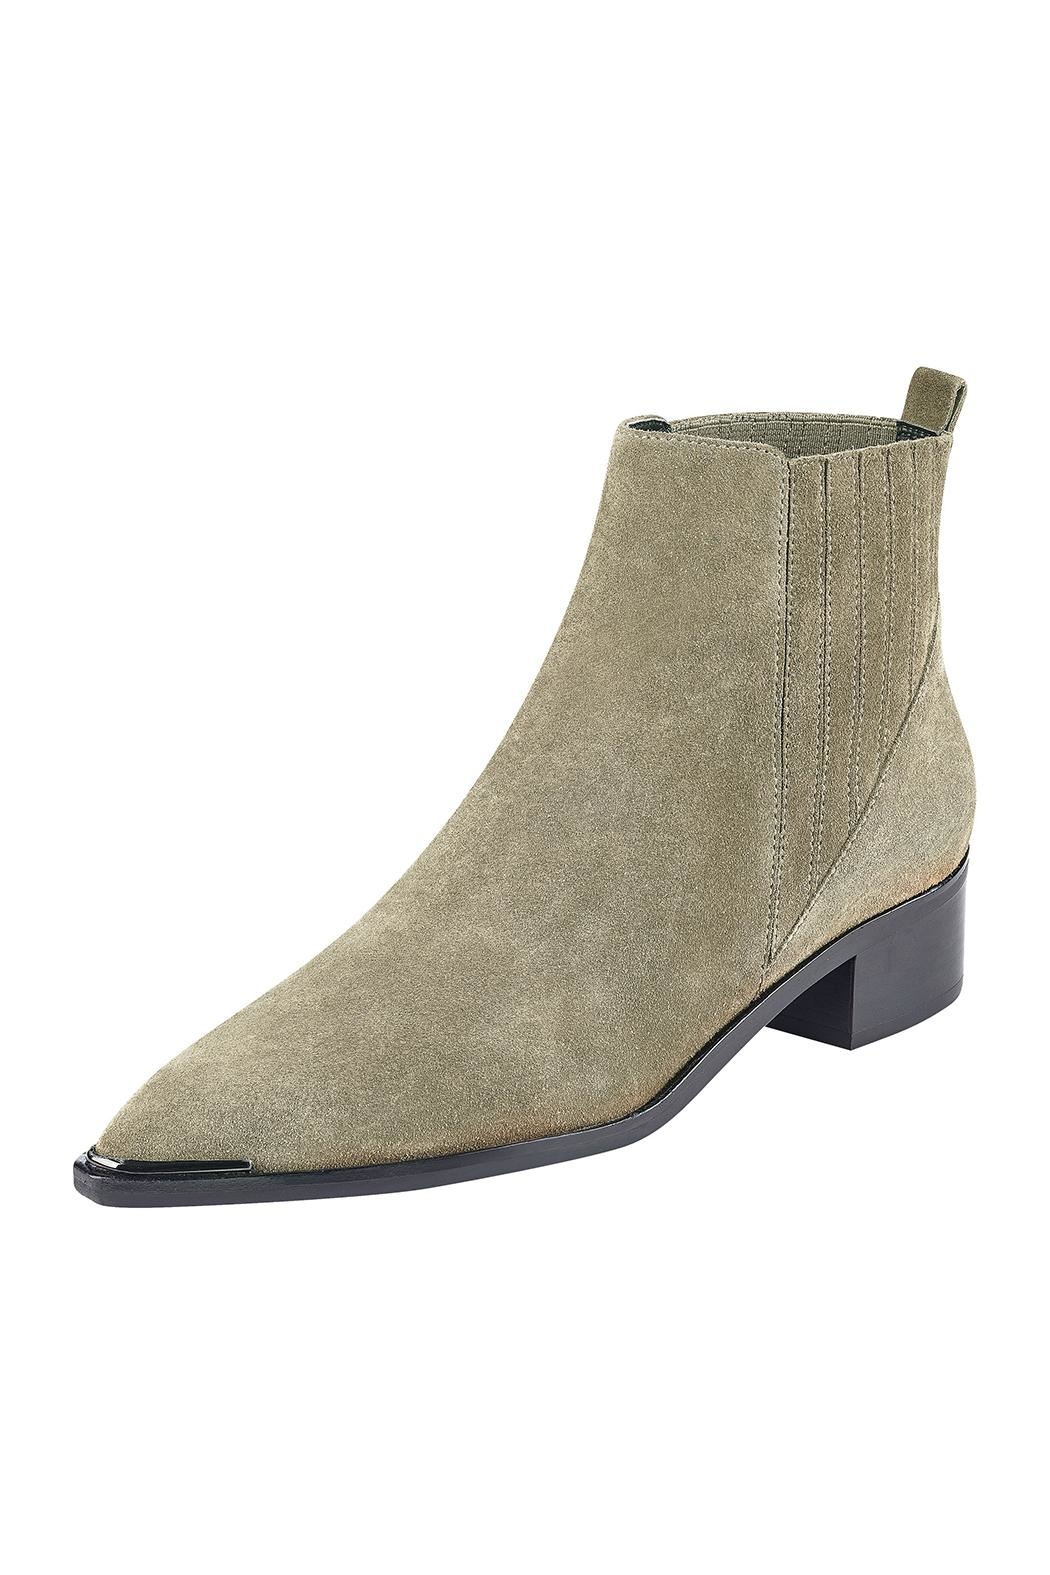 Marc Fisher LTD Yommi Taupe Booties - Main Image